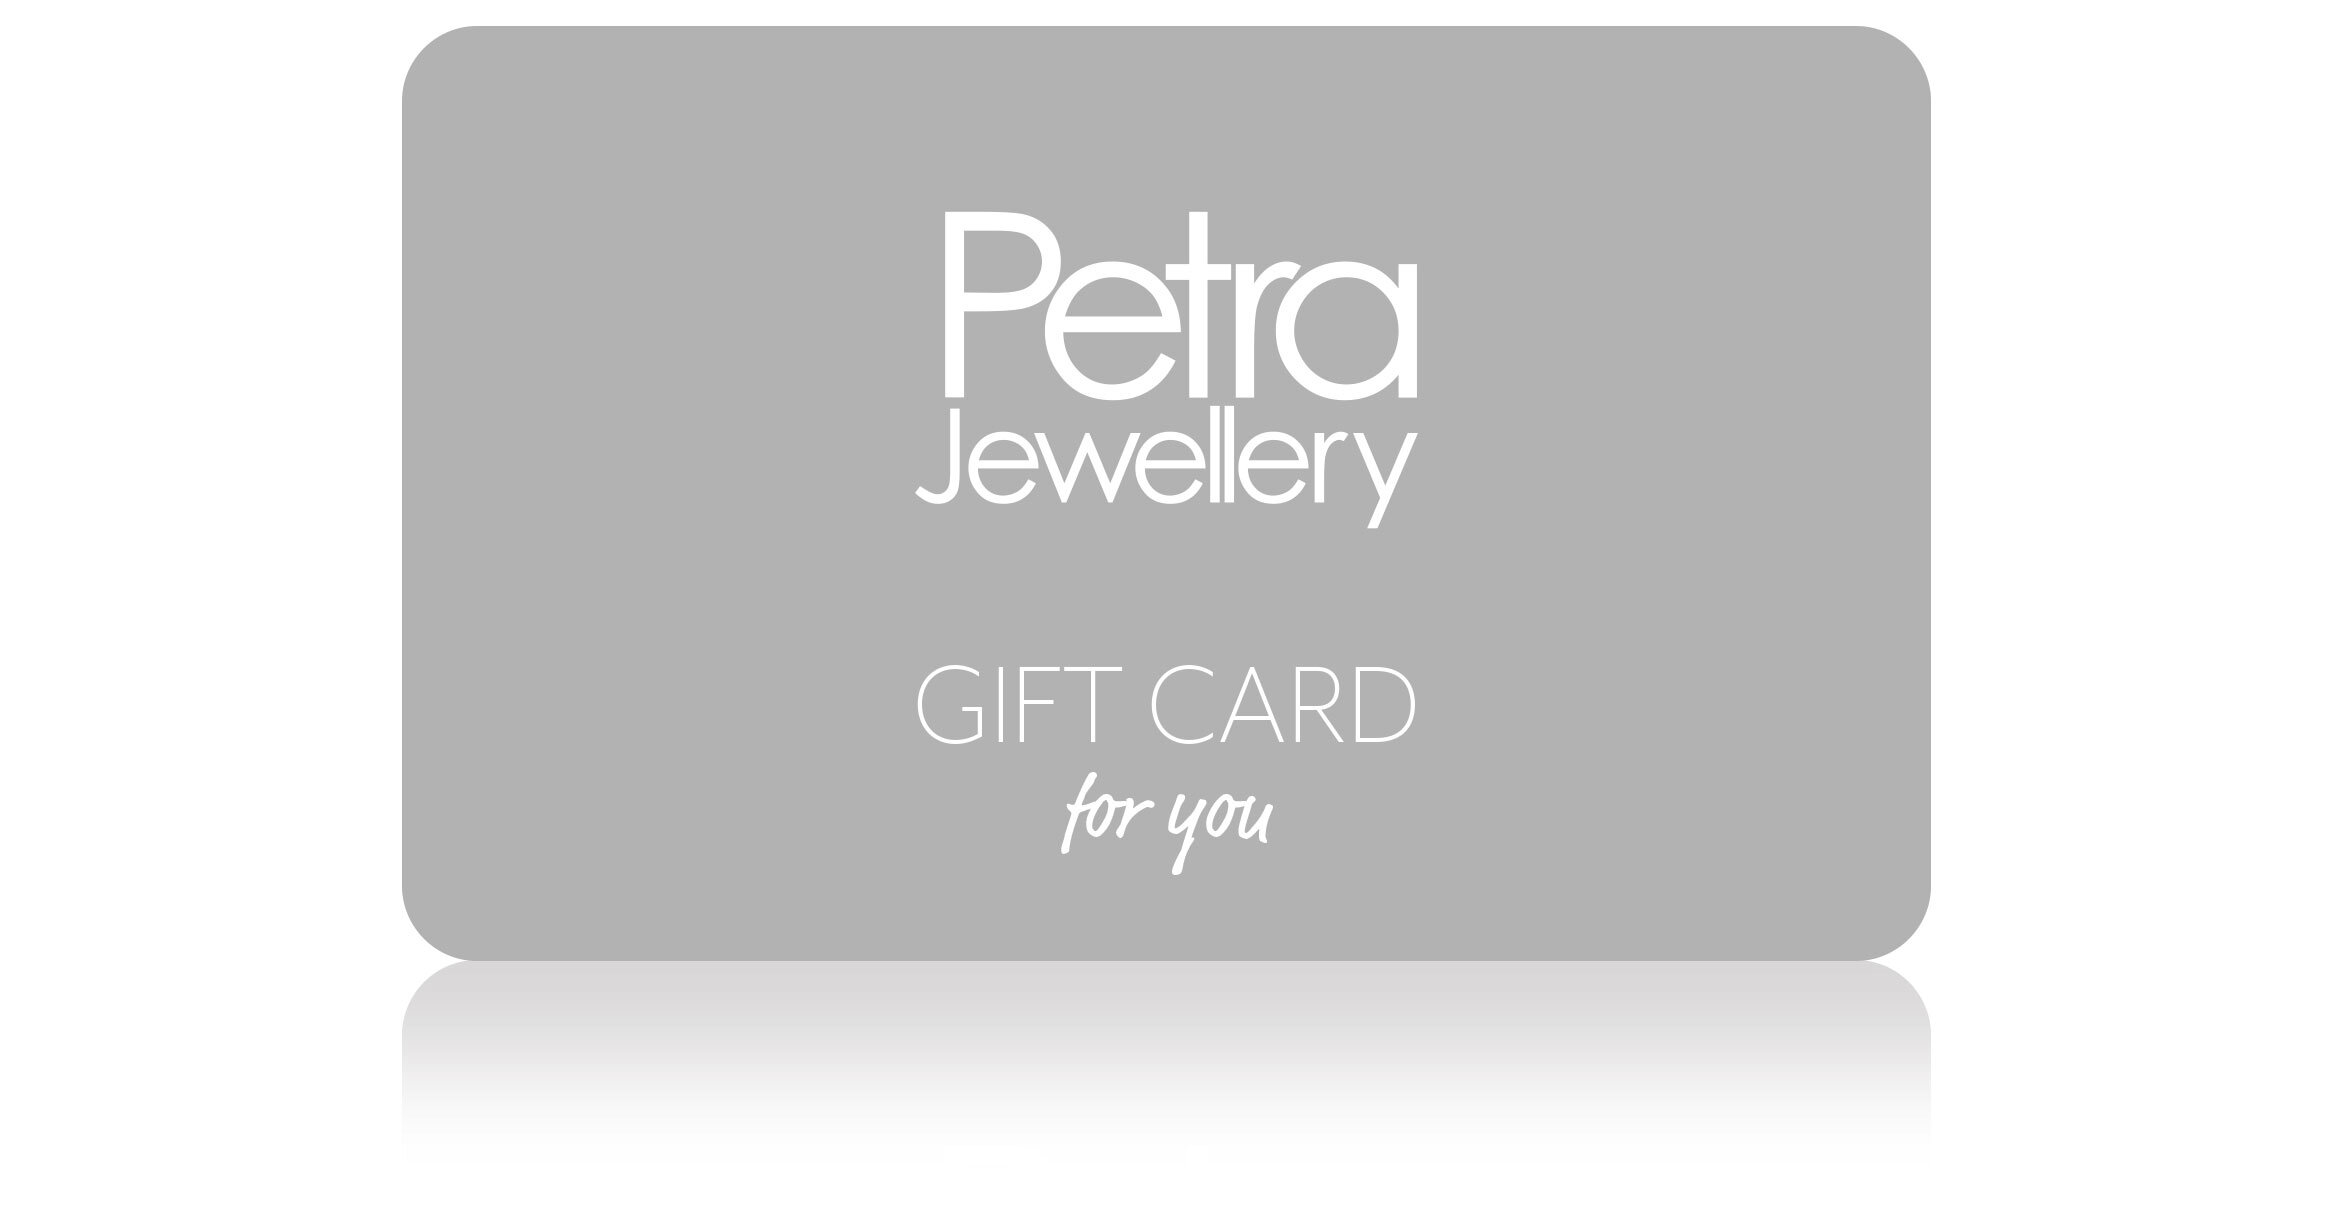 You can buy gift cards and e-gift cards to be used as part or full payment>